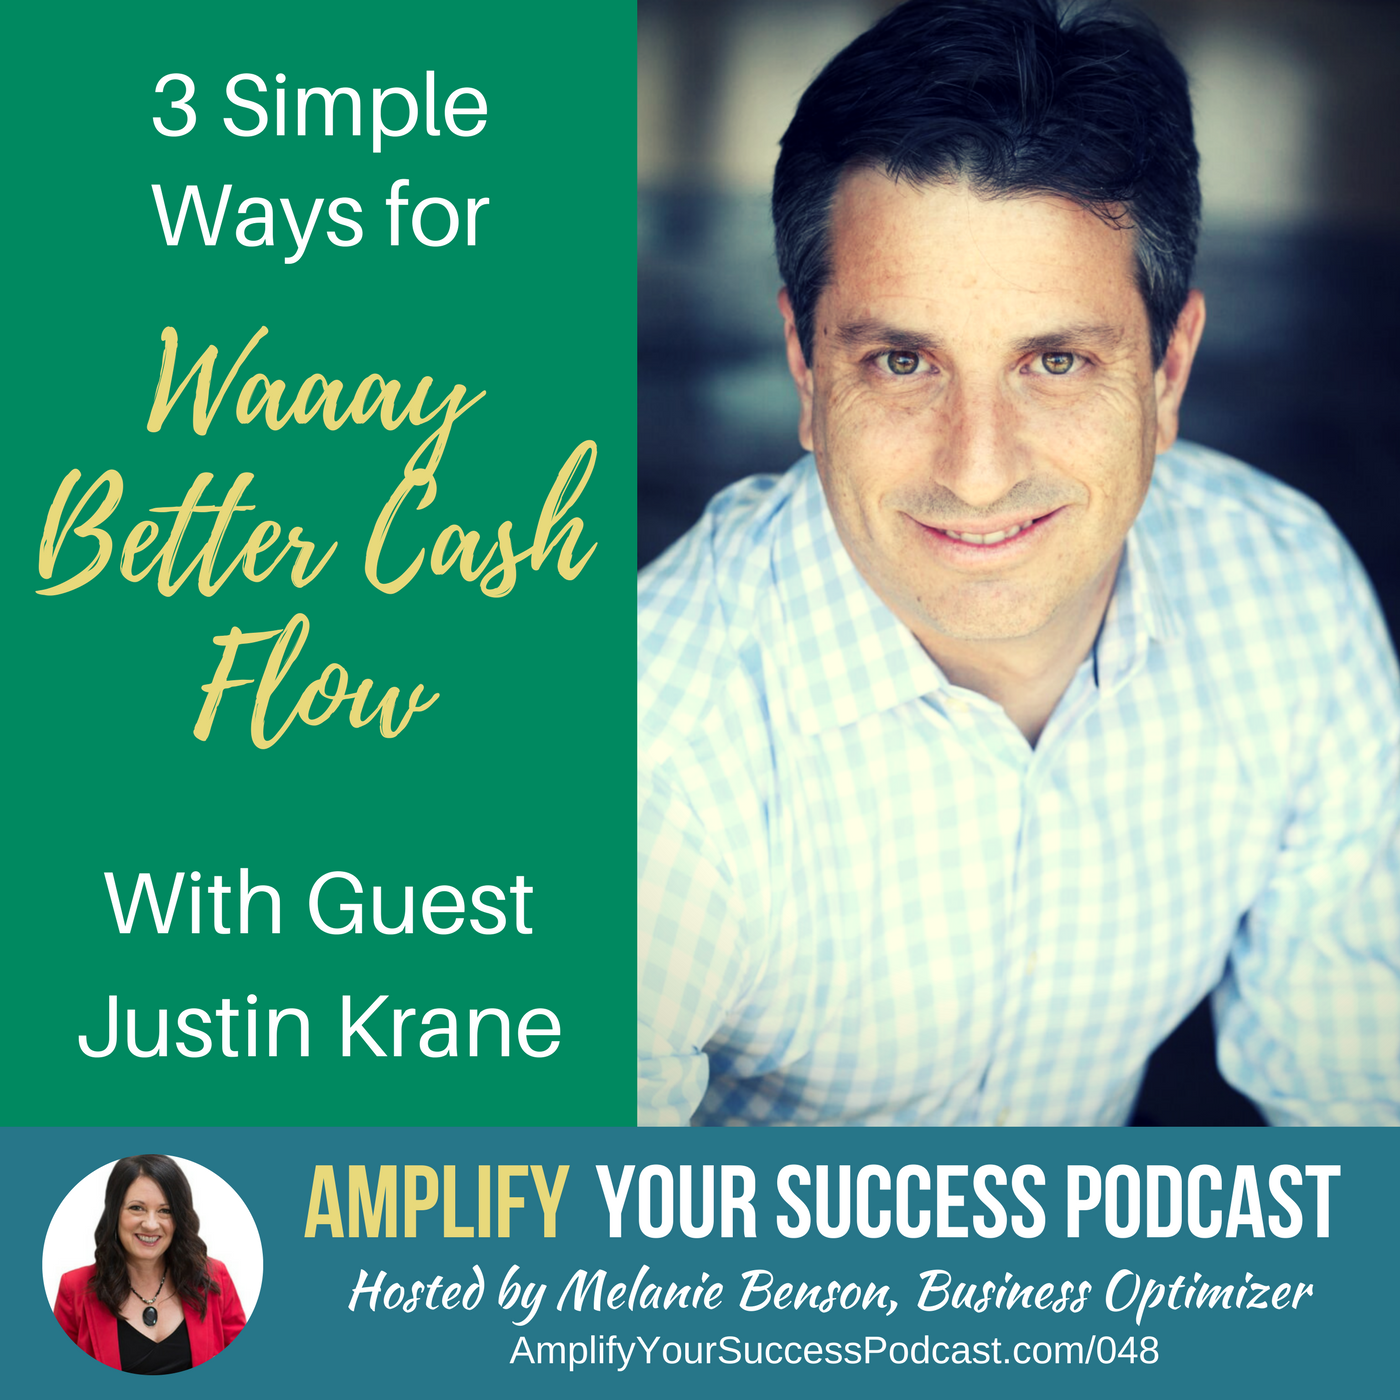 Amplify Your Success Episode 048: 3 Ways to Create Waaaay Better Cash Flow with Justin Krane